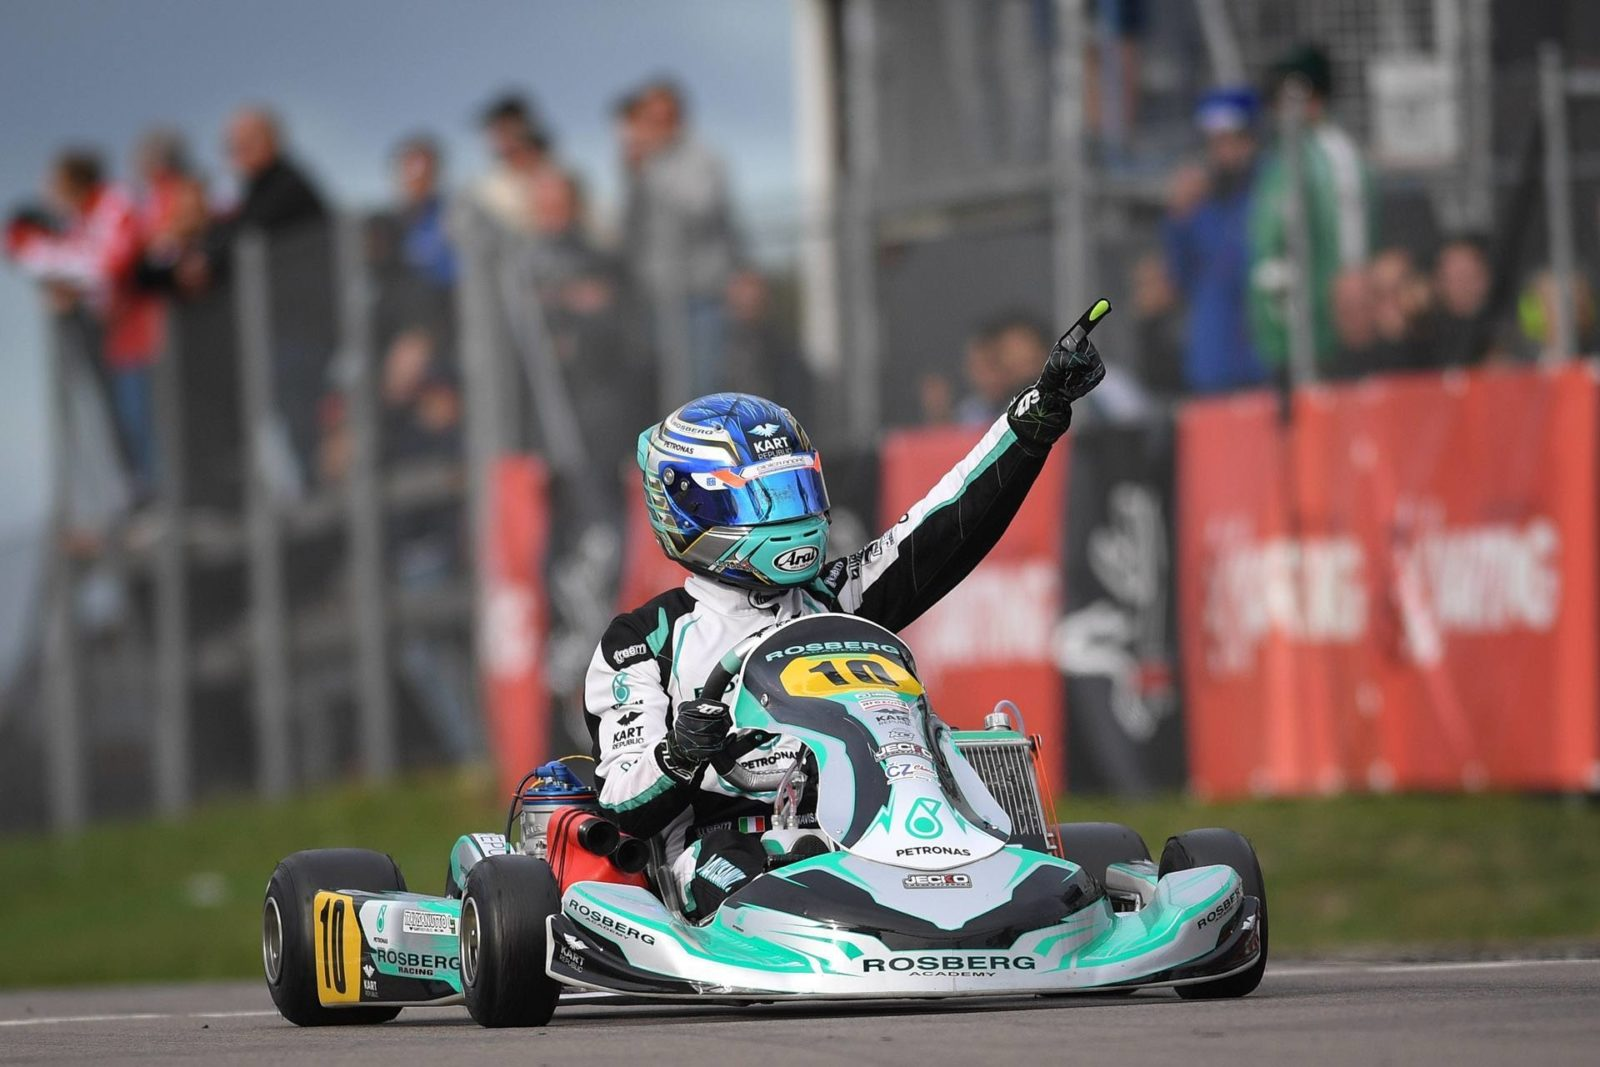 Lorenzo Travisanutto pumps his fists after the victory at the 2018 FIA Karting World Championships in Kristianstad, Sweden